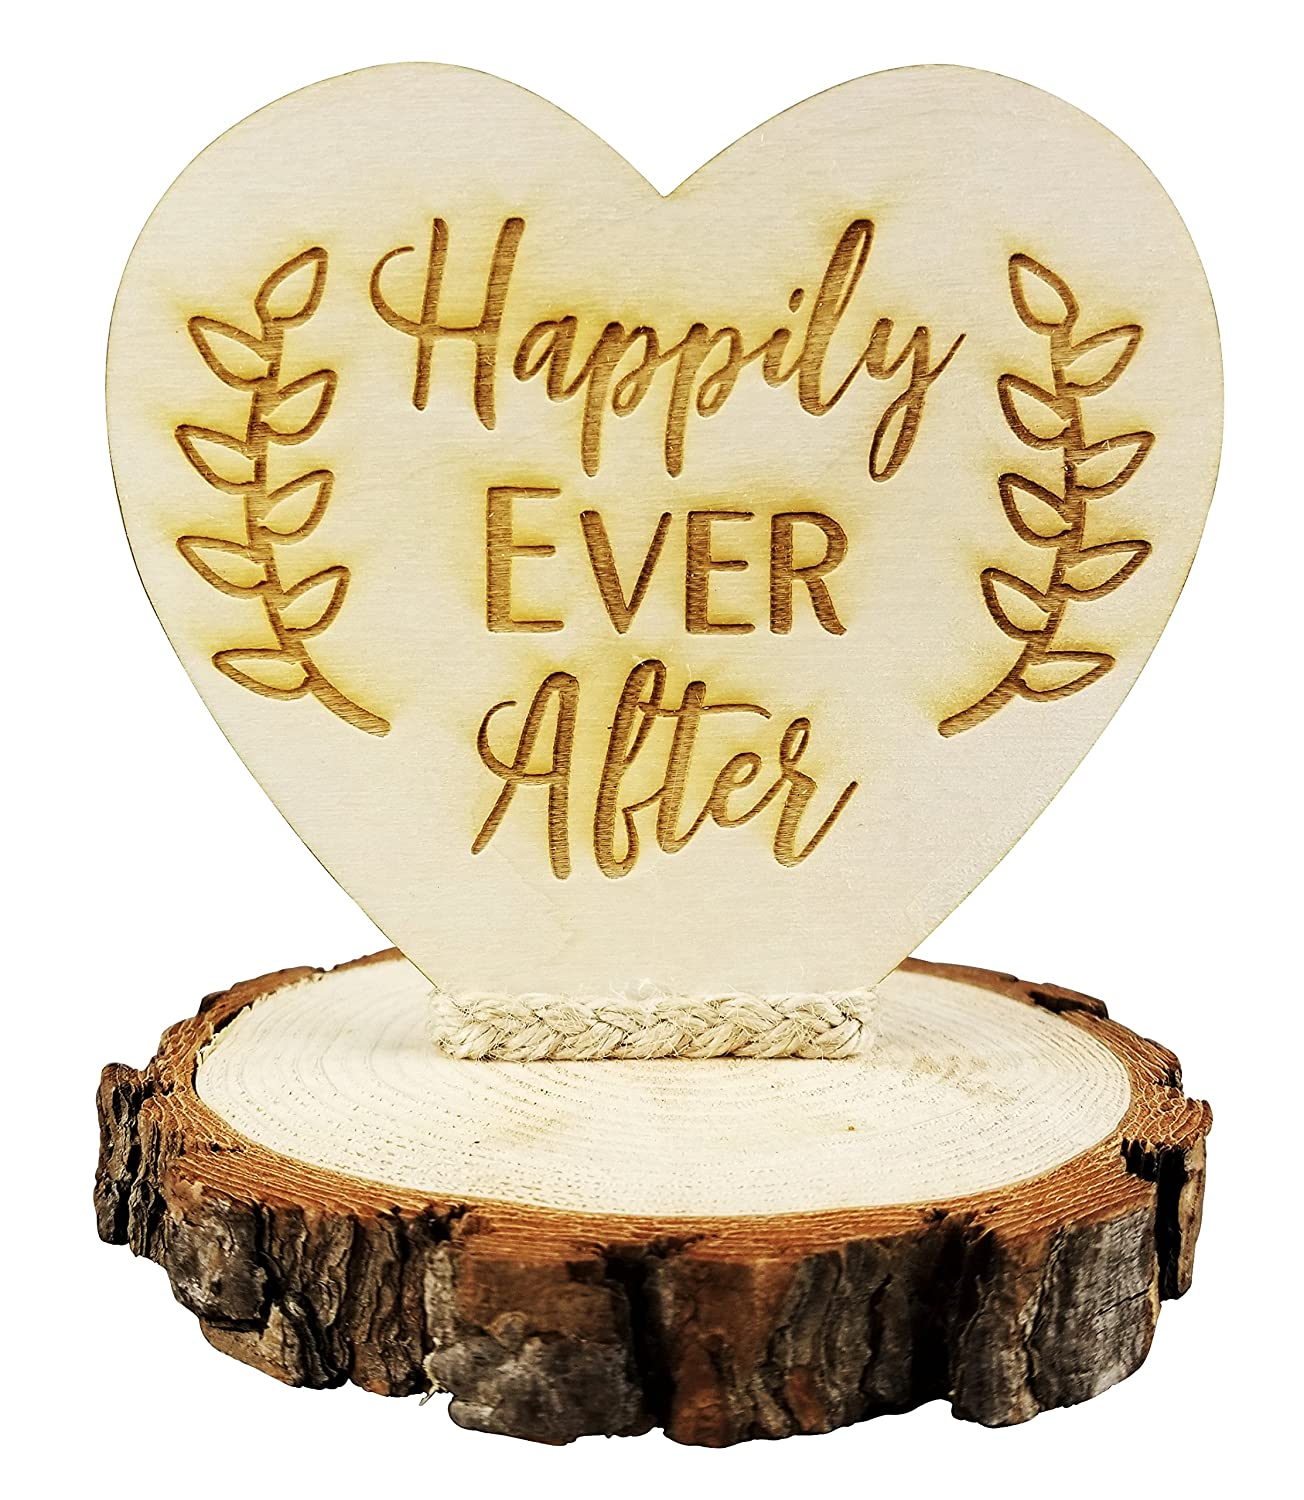 Happily Ever After Rustic Wedding Cake Topper: Amazon.com: Grocery ...